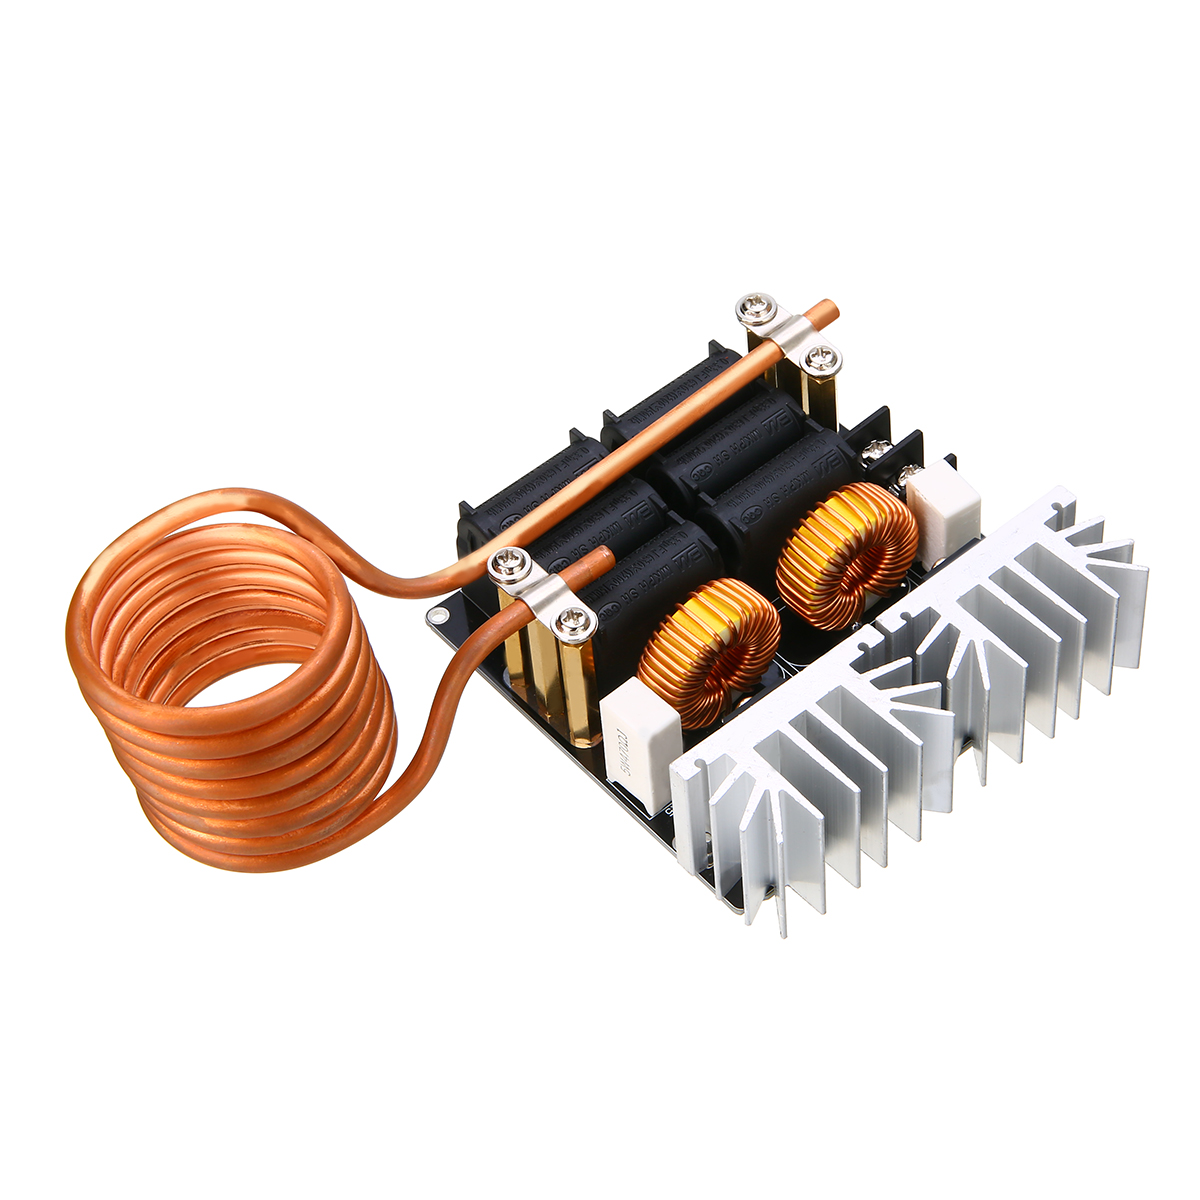 1pc 1000W ZVS Induction Heating Module Low Voltage DIY Heater Board with Tesla Coil Mayitr diy zvs tesla coil power supply boost voltage generator drive board induction heating module